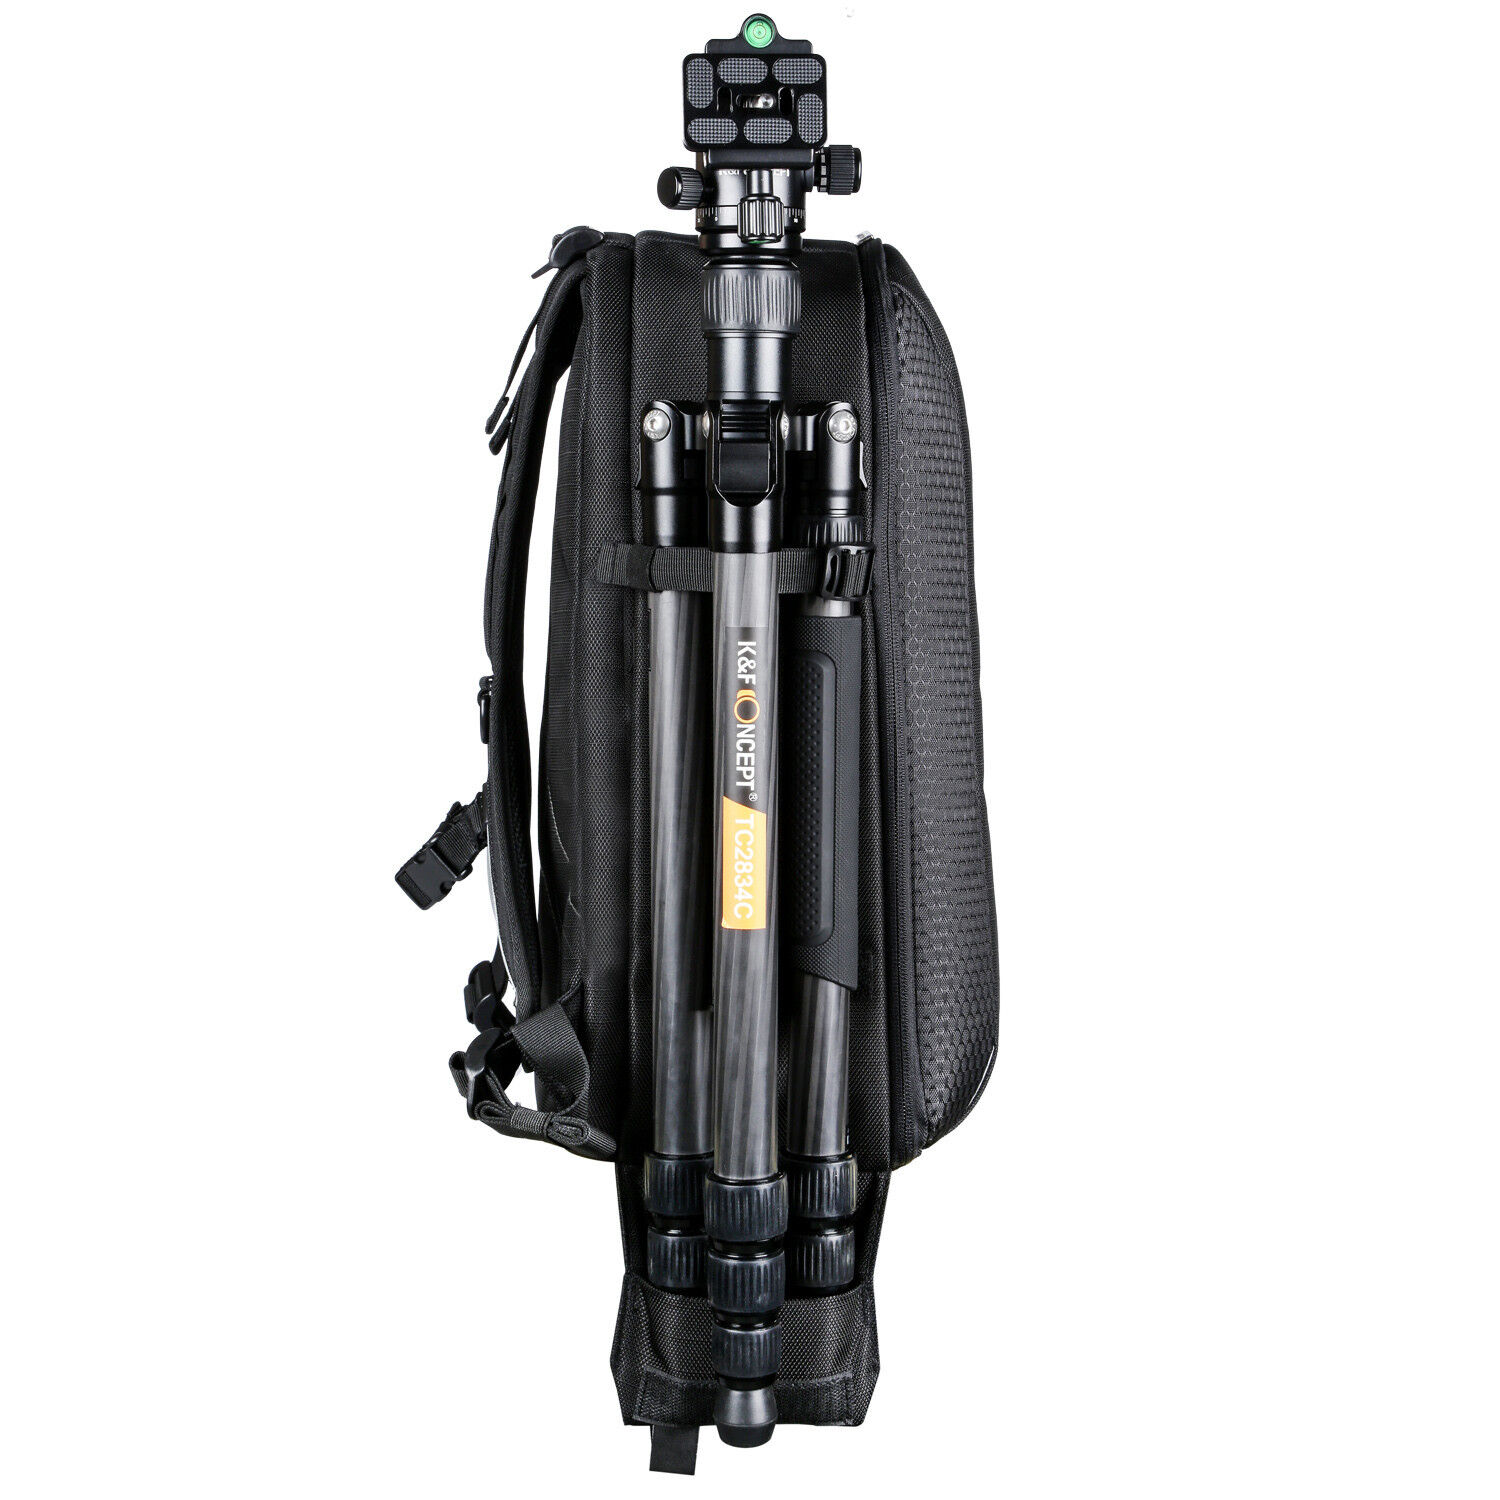 K&F Concept Camera Backpack Bag Waterproof Case W/Rain Cover for Sony Nikon DRSL